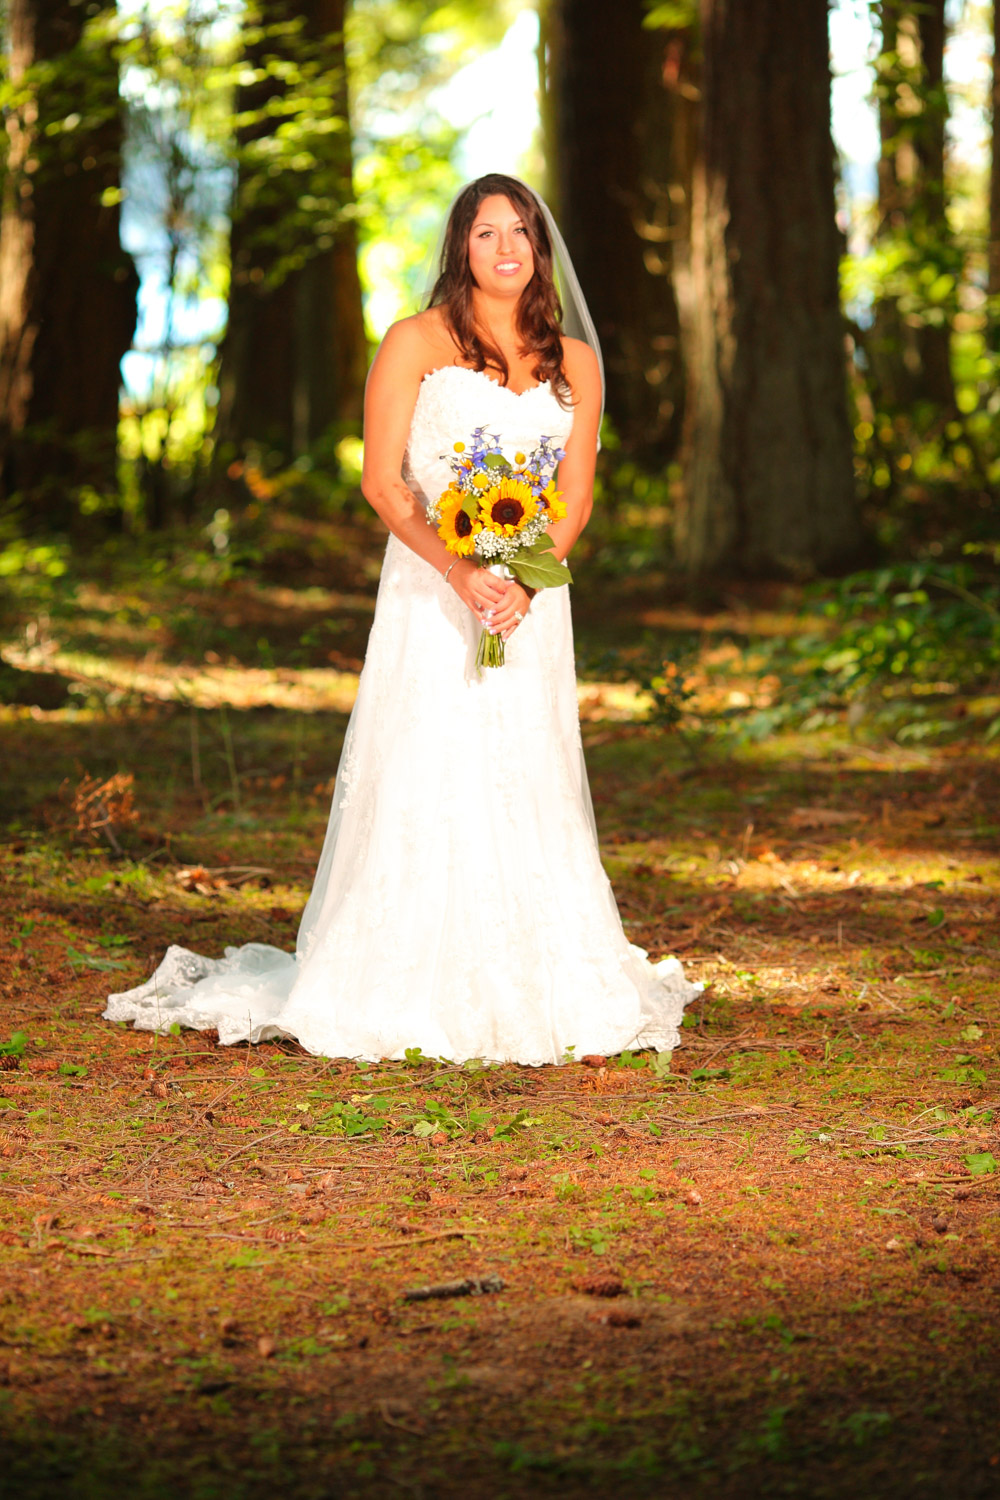 Wedding Photos Kitsap State Park Kitsap Washington21.jpg